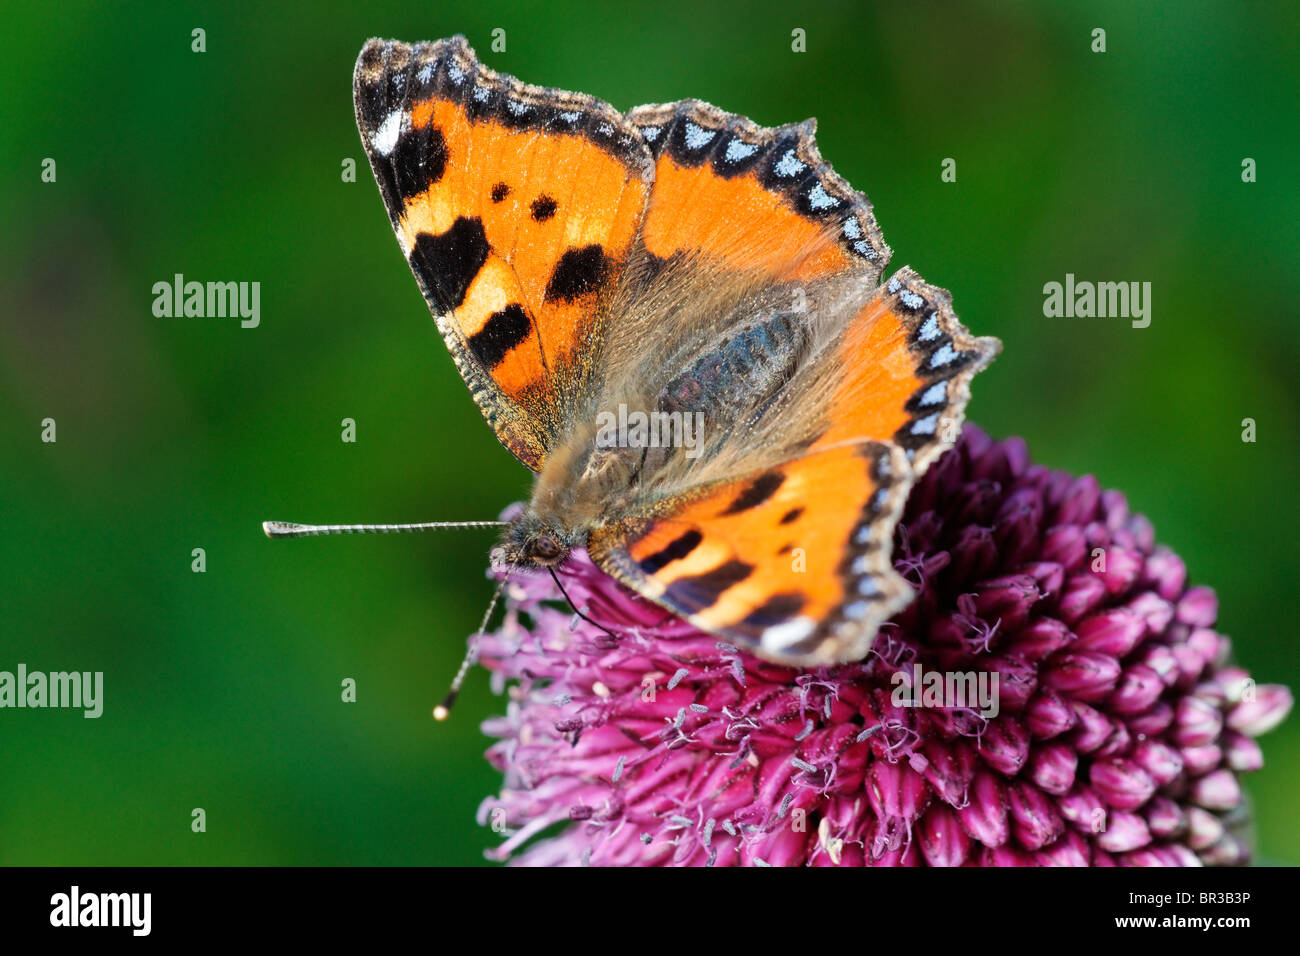 Painted Lady Butterfly on an Allium flower. - Stock Image